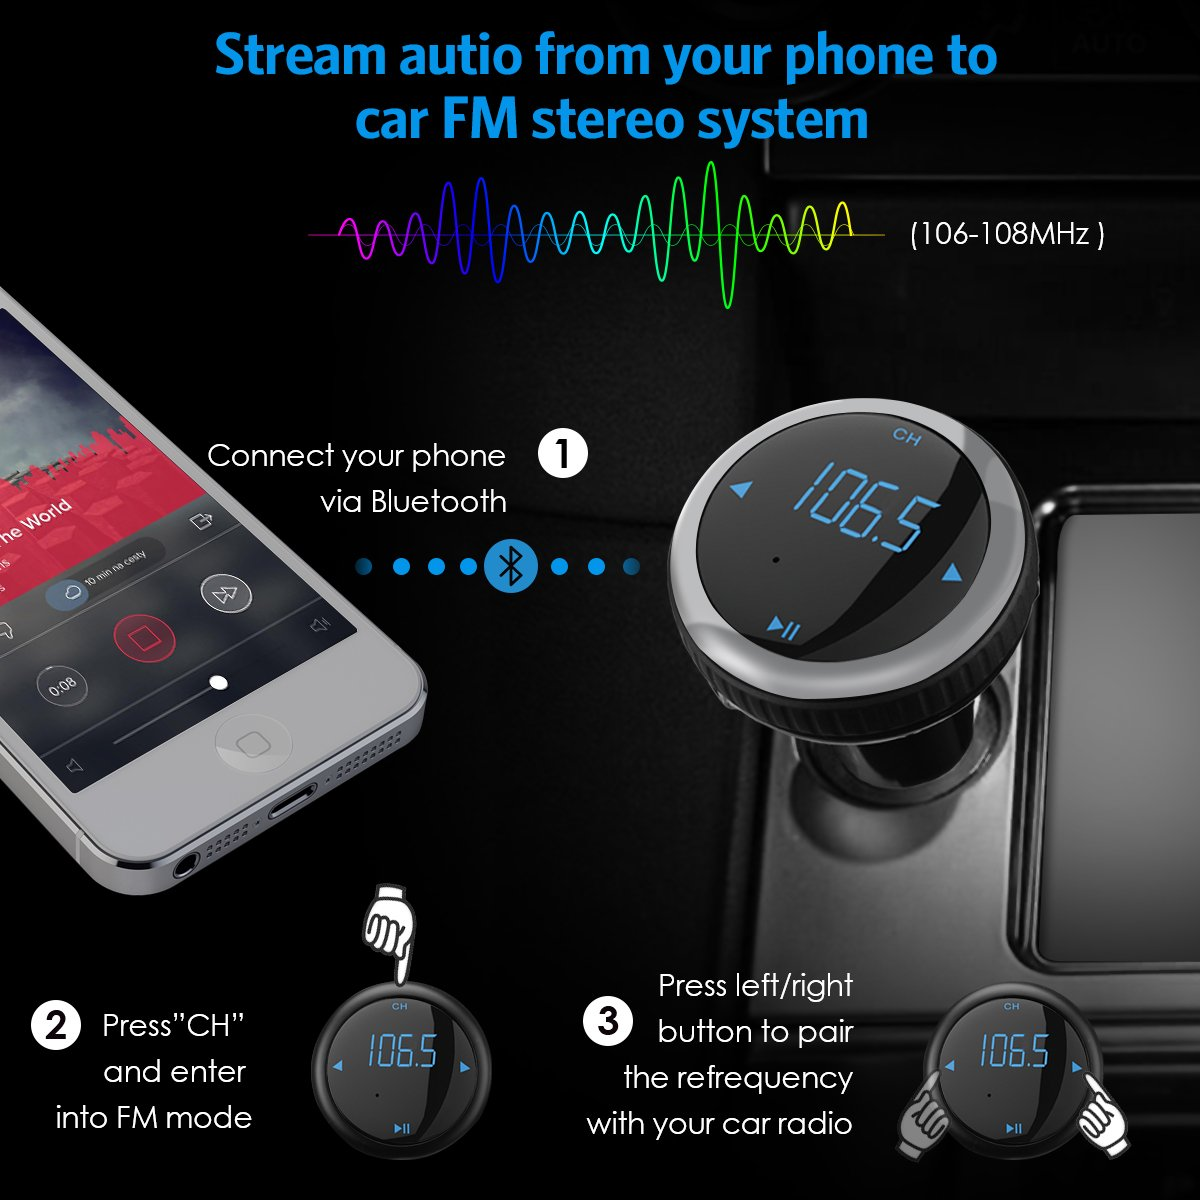 Criacr Bluetooth FM Transmitter, Car Charger with Smart Locator, 5V 2.1A USB Charging Port, Wireless In-Car Radio Adapter Car Kit, MP3 Player, Hands-free Call for iPhone, Samsung, Smartphone (Silver) by AMIR (Image #4)